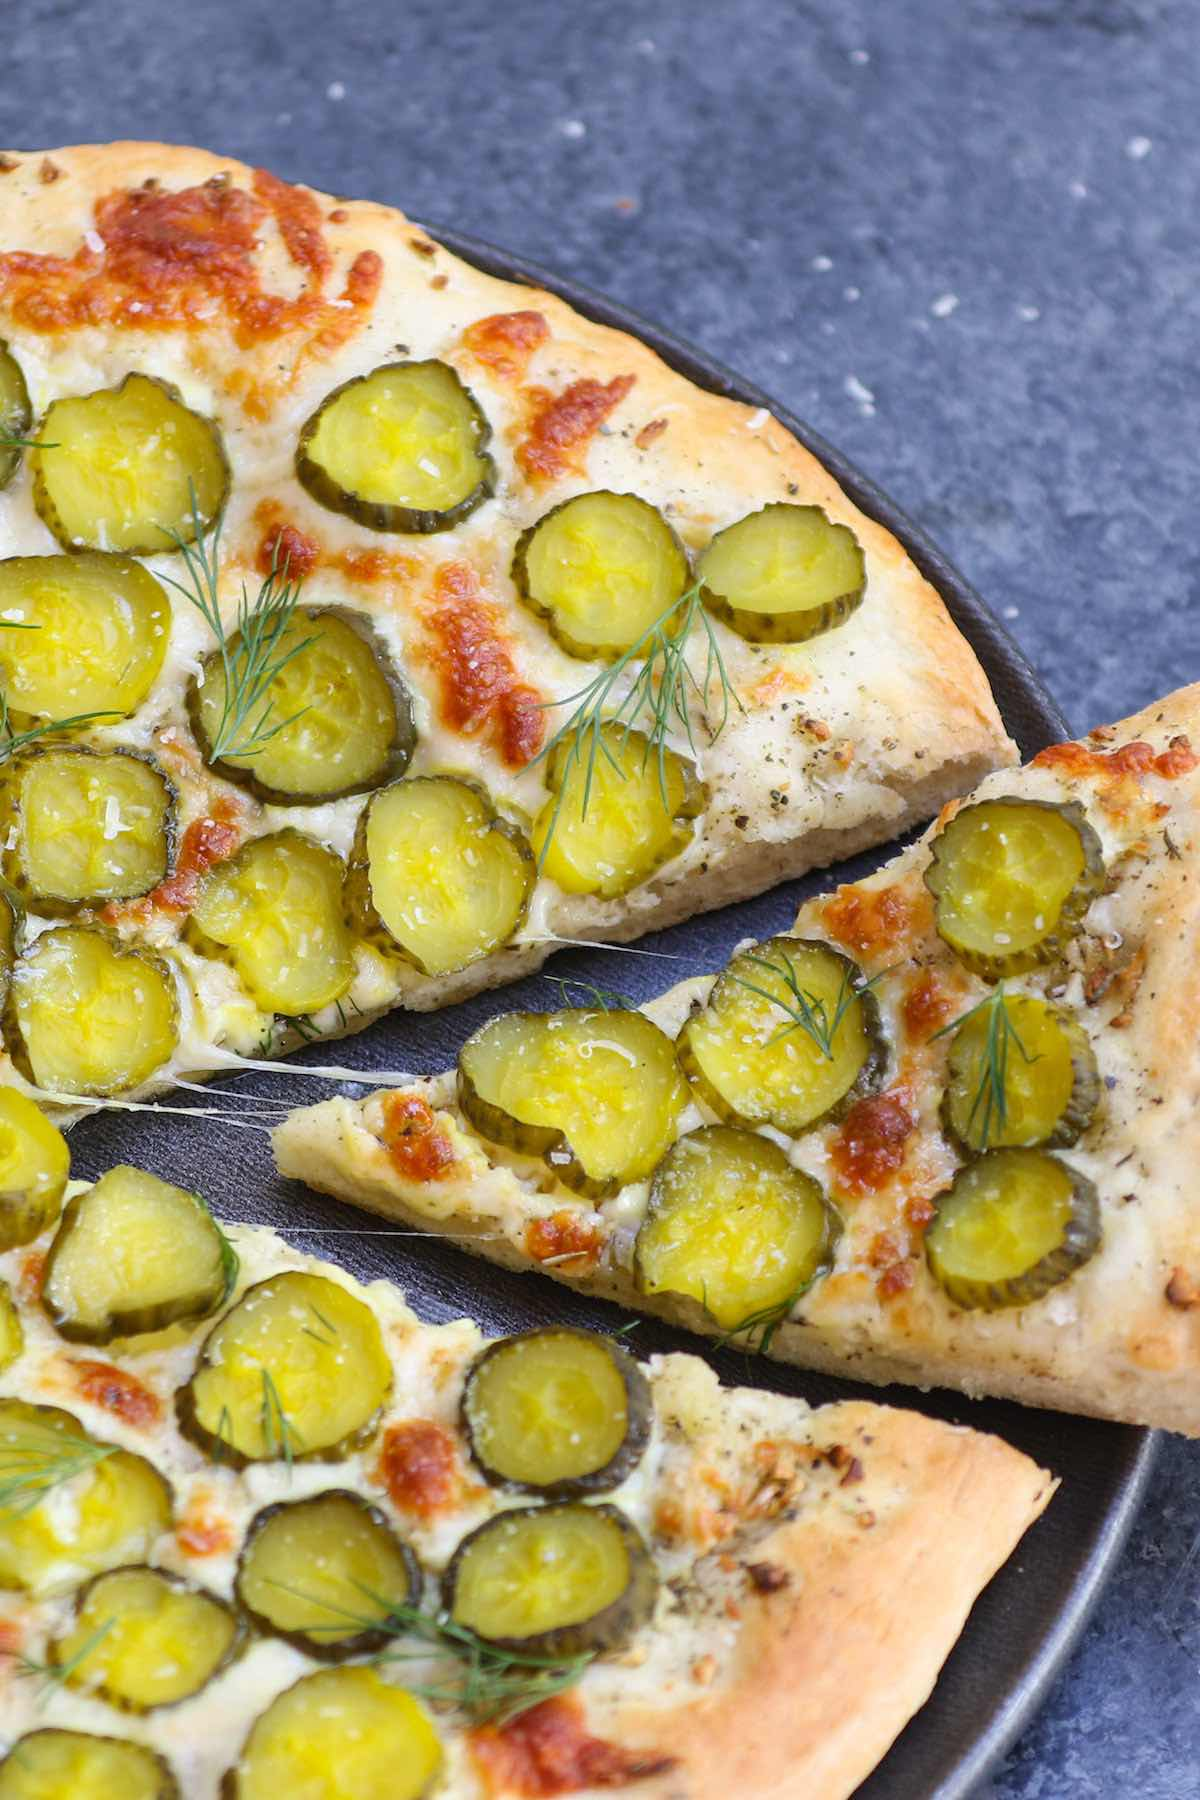 Pickles on Pizza! I never thought I'd like the idea, then once upon a time I tried Dill Pickle Pizza with garlic sauce. It changed my entire outlook on pickle pizza. The combination of cheesy, garlicky, and tangy flavors is seriously good! And there's ranch on the side for dipping. #PicklePizza #DillPicklePizza